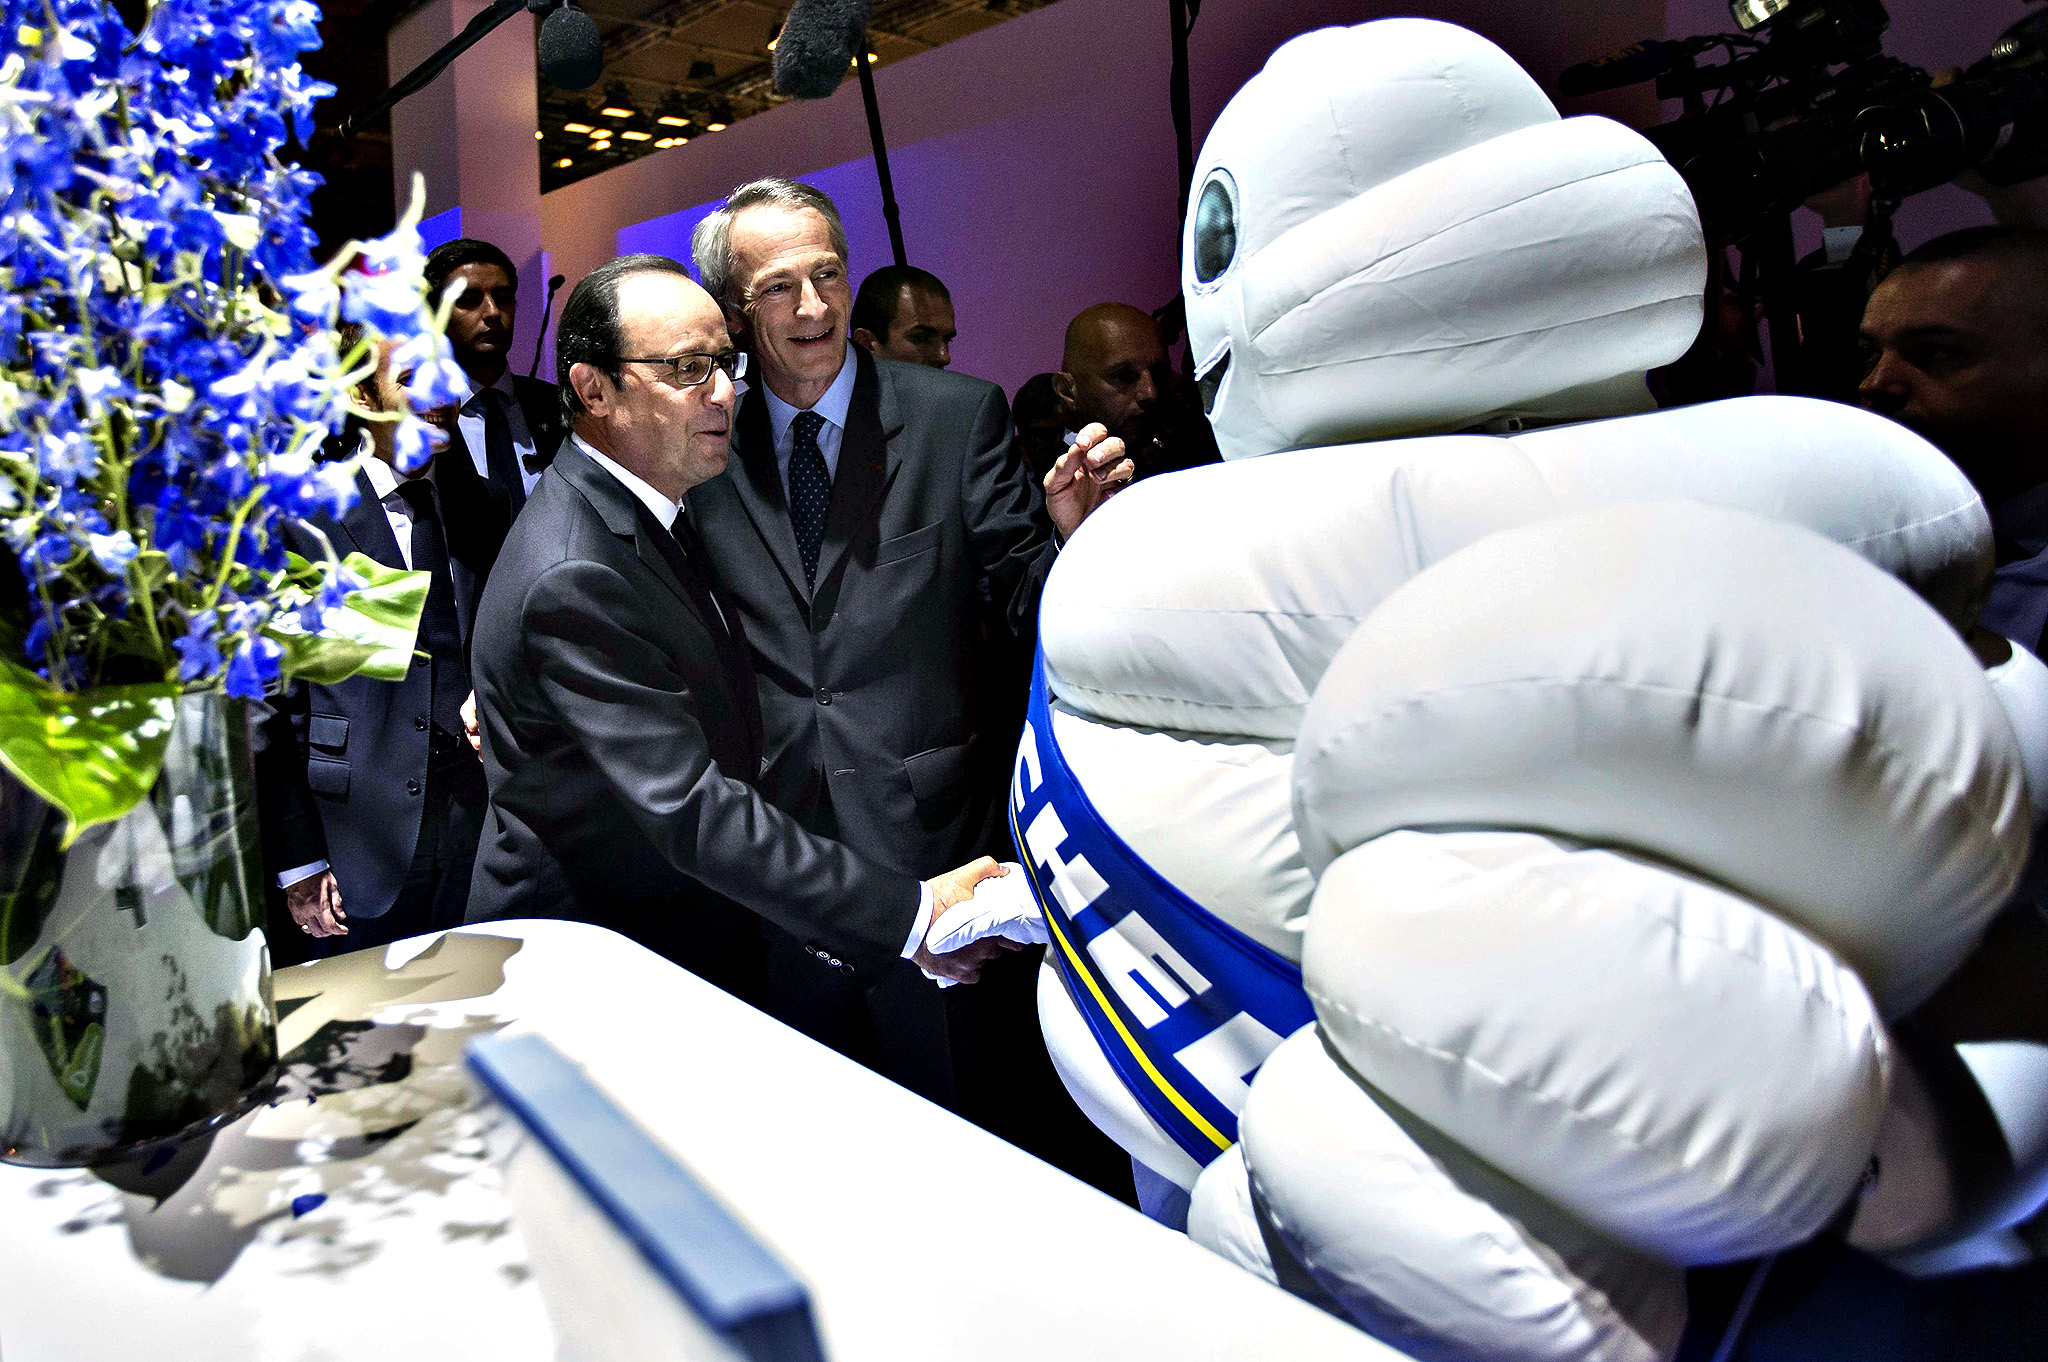 French President Francois Hollande (L) is greeted by President of tire company Michelin, Jean-Dominque Senard (C) and a person dressed in a Michelin-Man costume during an official visit to the Paris Motor Show in Paris on October 03, 2014. The Paris Motor Show, which takes place every two years, runs from October 4 to 19, 2014 with international car makers presenting their latest models and studies.